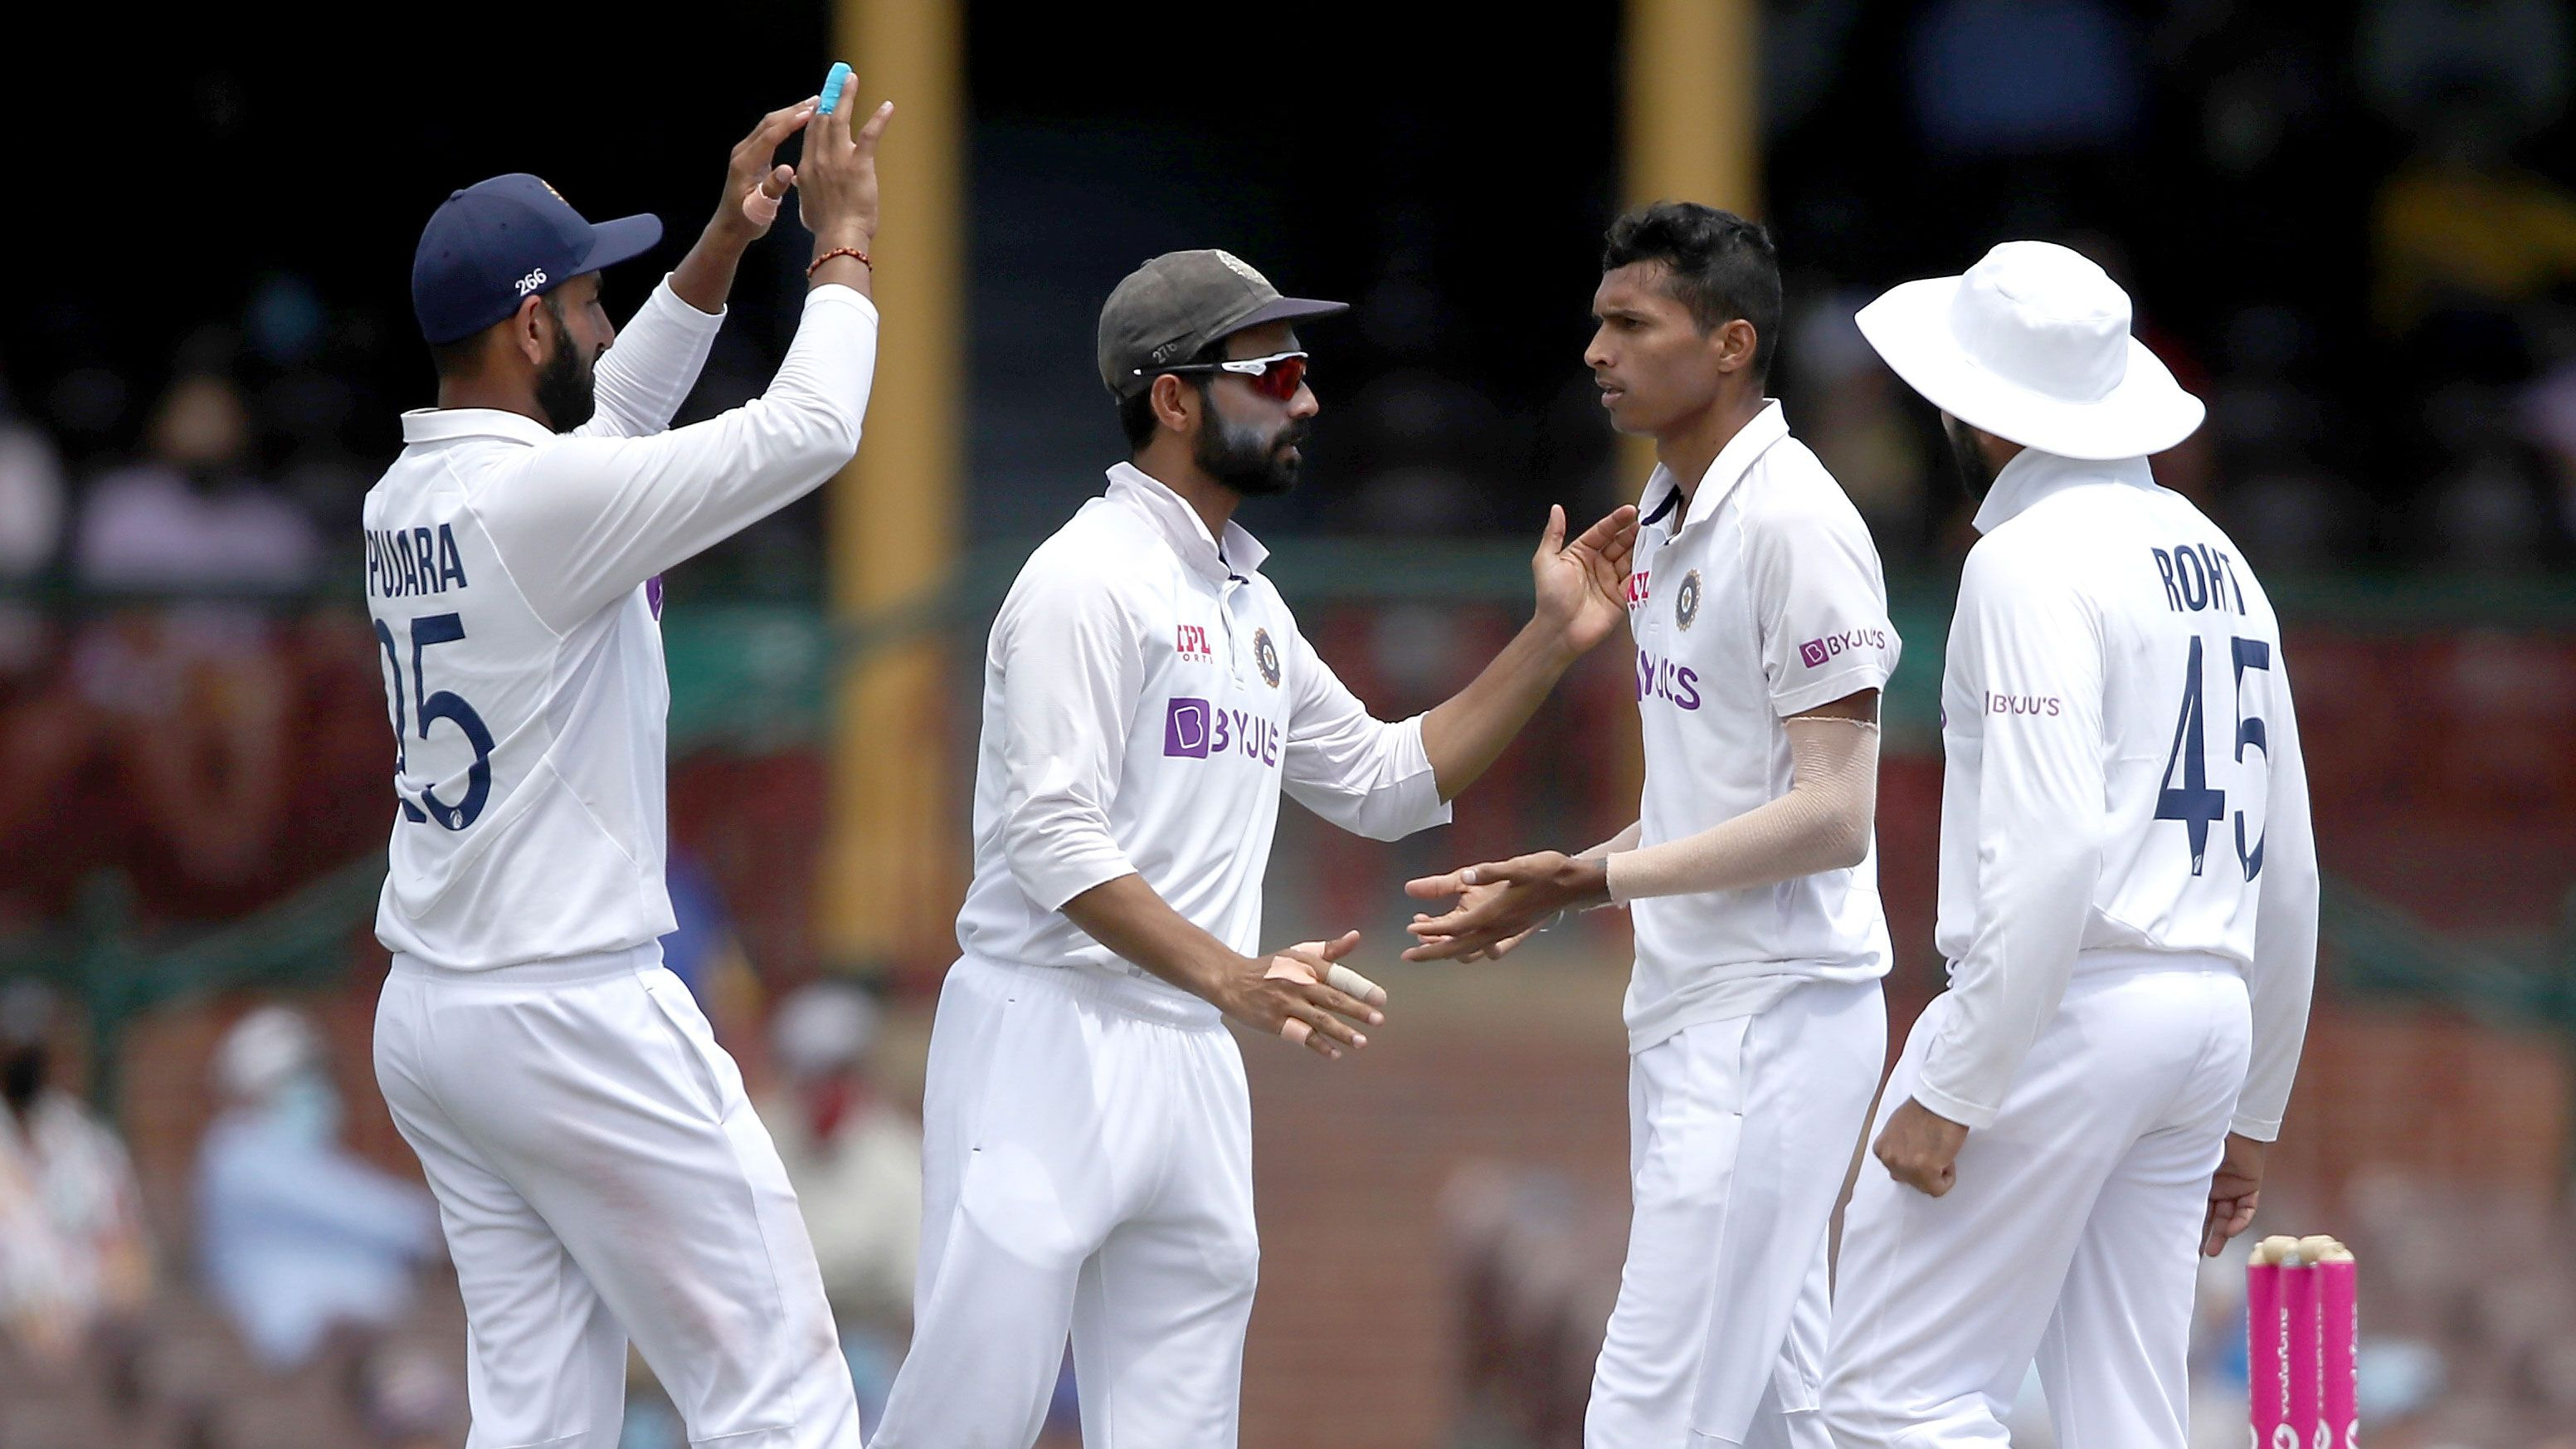 India players celebrate a wicket during the SCG Test.